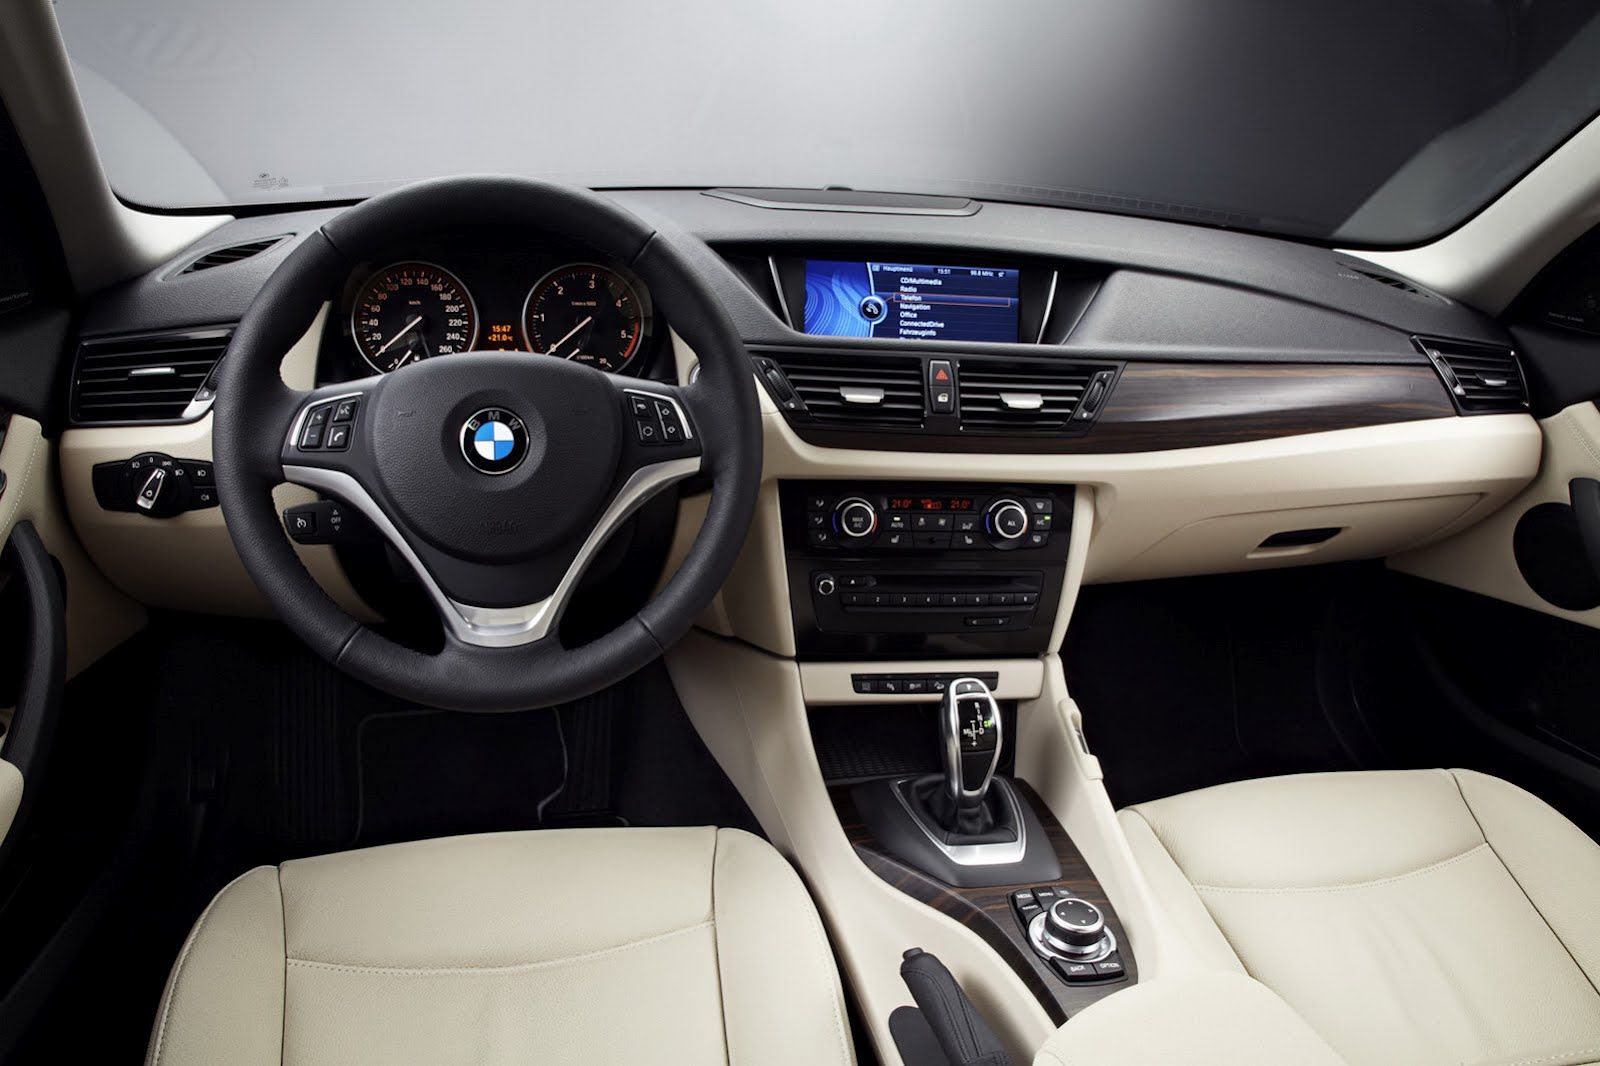 Led Verlichting Bmw X1 Bmw X1 Interior Black And Suede Clean And Perfect With The